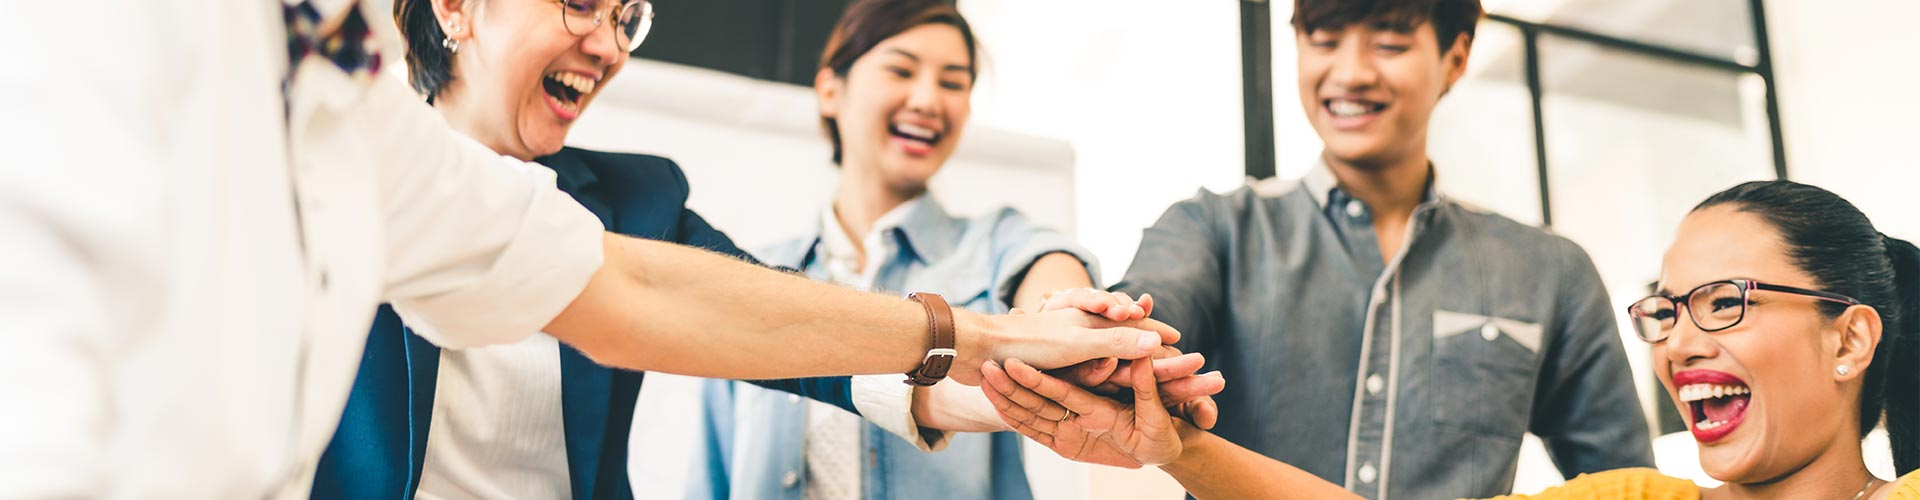 5 steps to build employee engagement